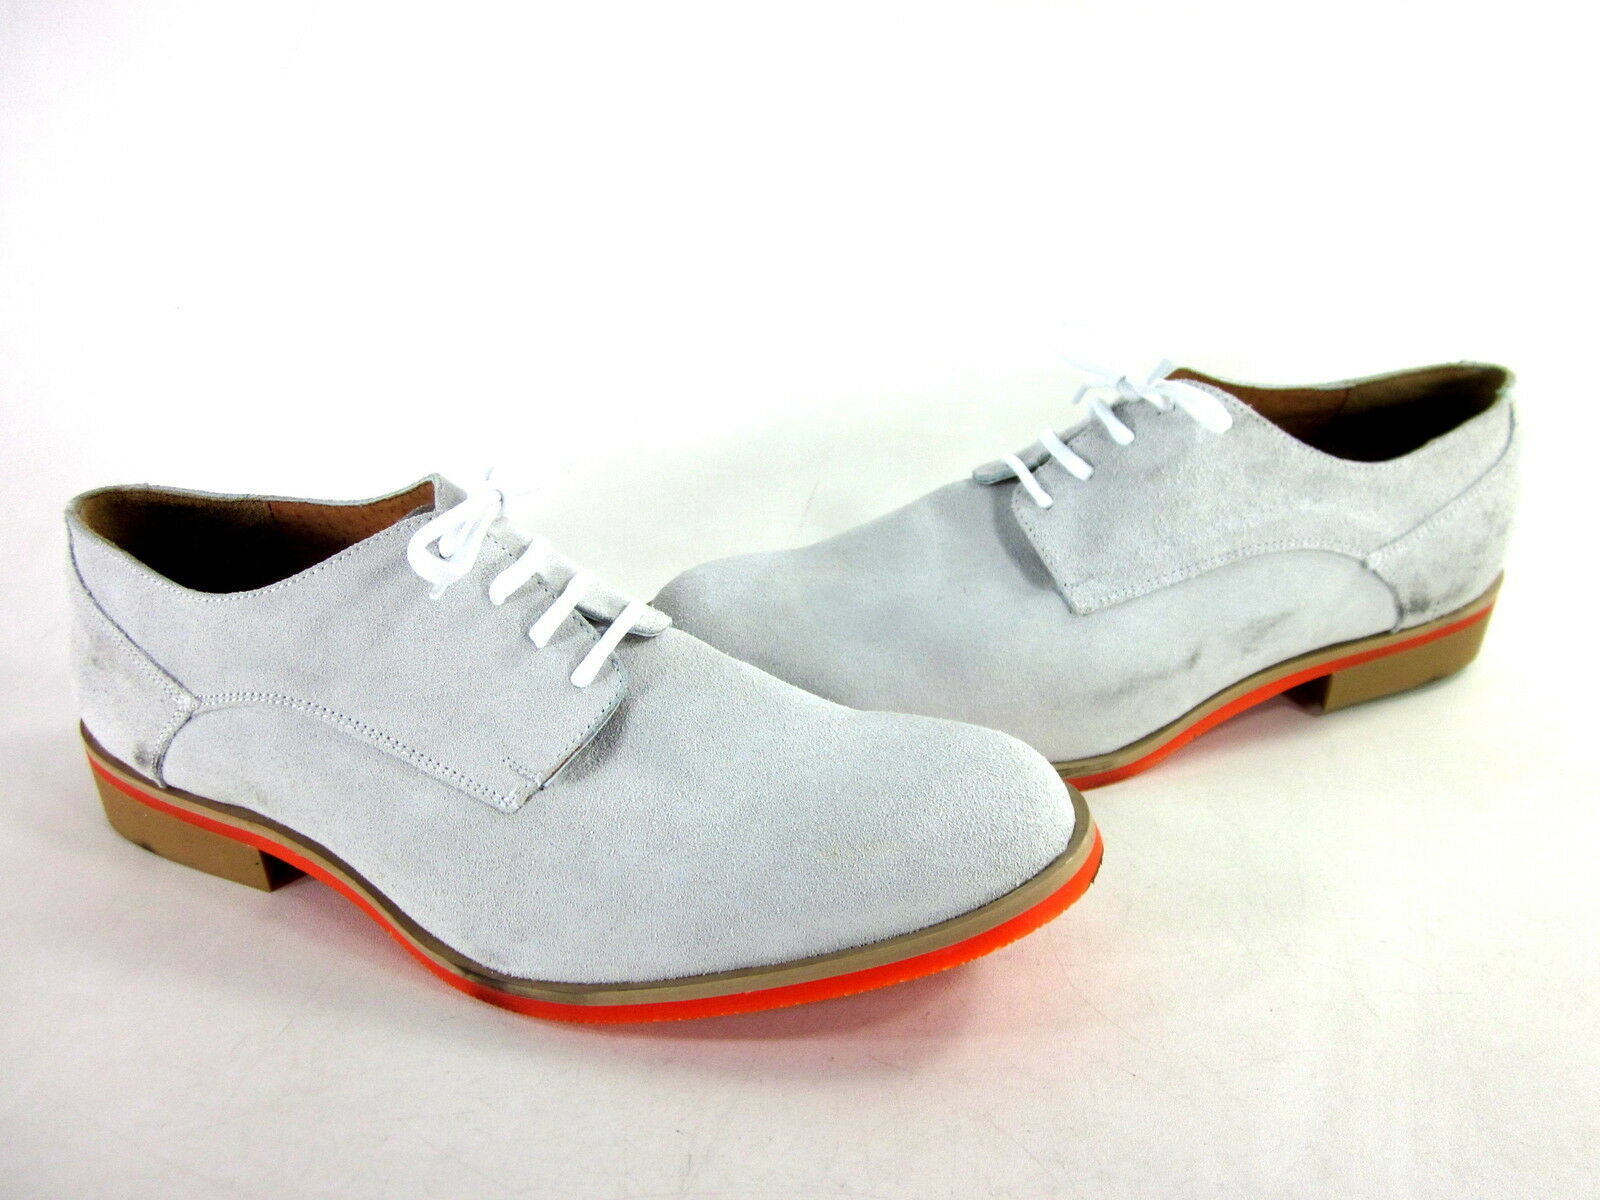 059bd65eba5a JD FISK MEN S CALLUM OXFORD WHITE ORANGE LEATHER IMPORTED US US US SIZE 12  MEDIUM